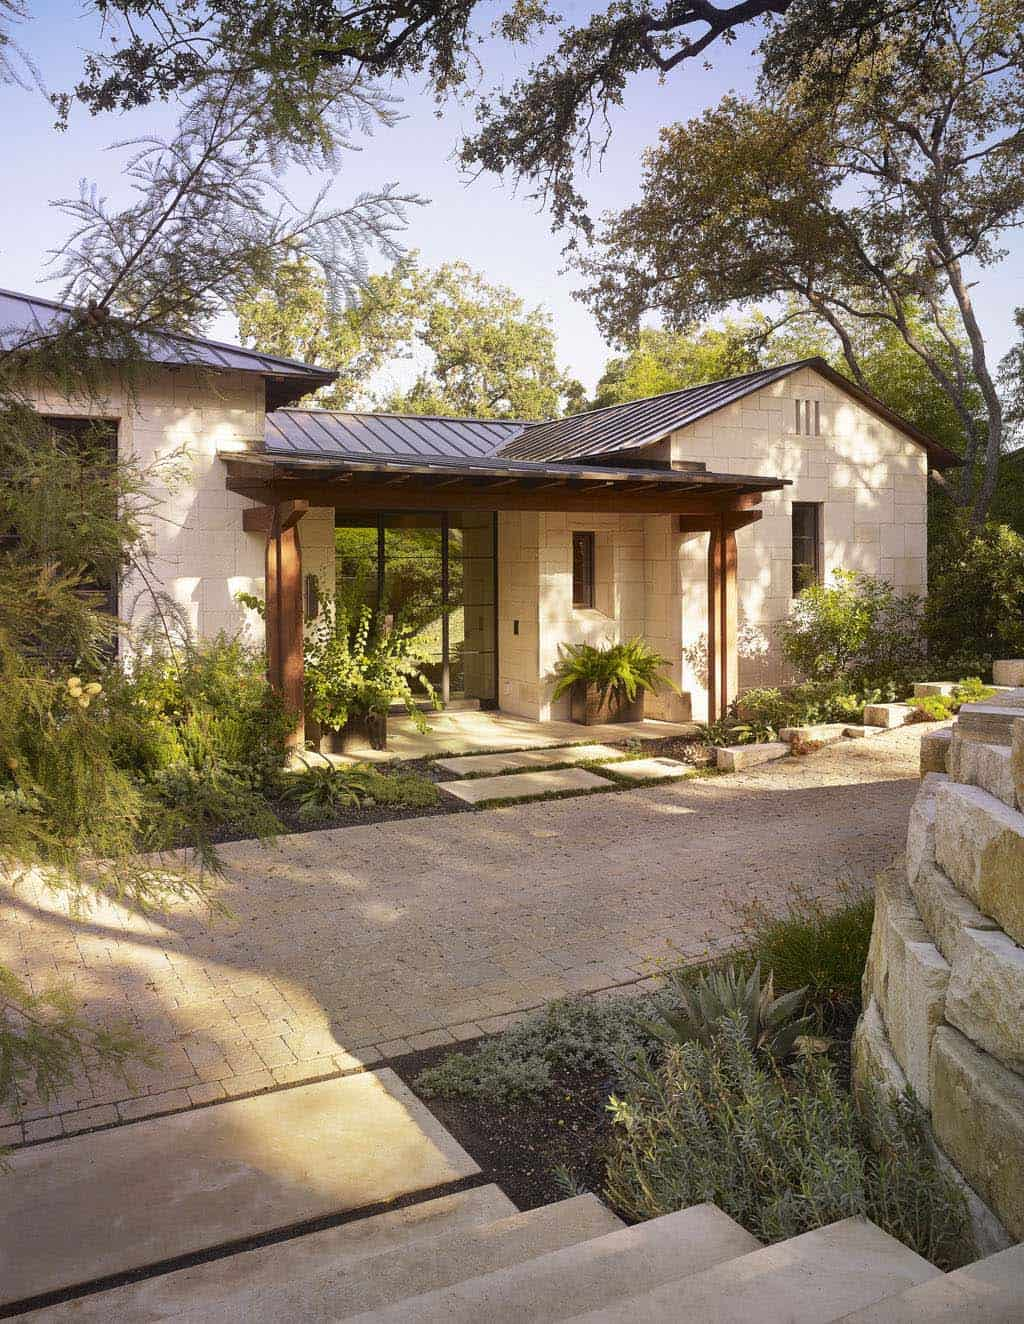 Stunning rustic modern home nestled on beautiful lake austin texas Home furniture rental austin texas